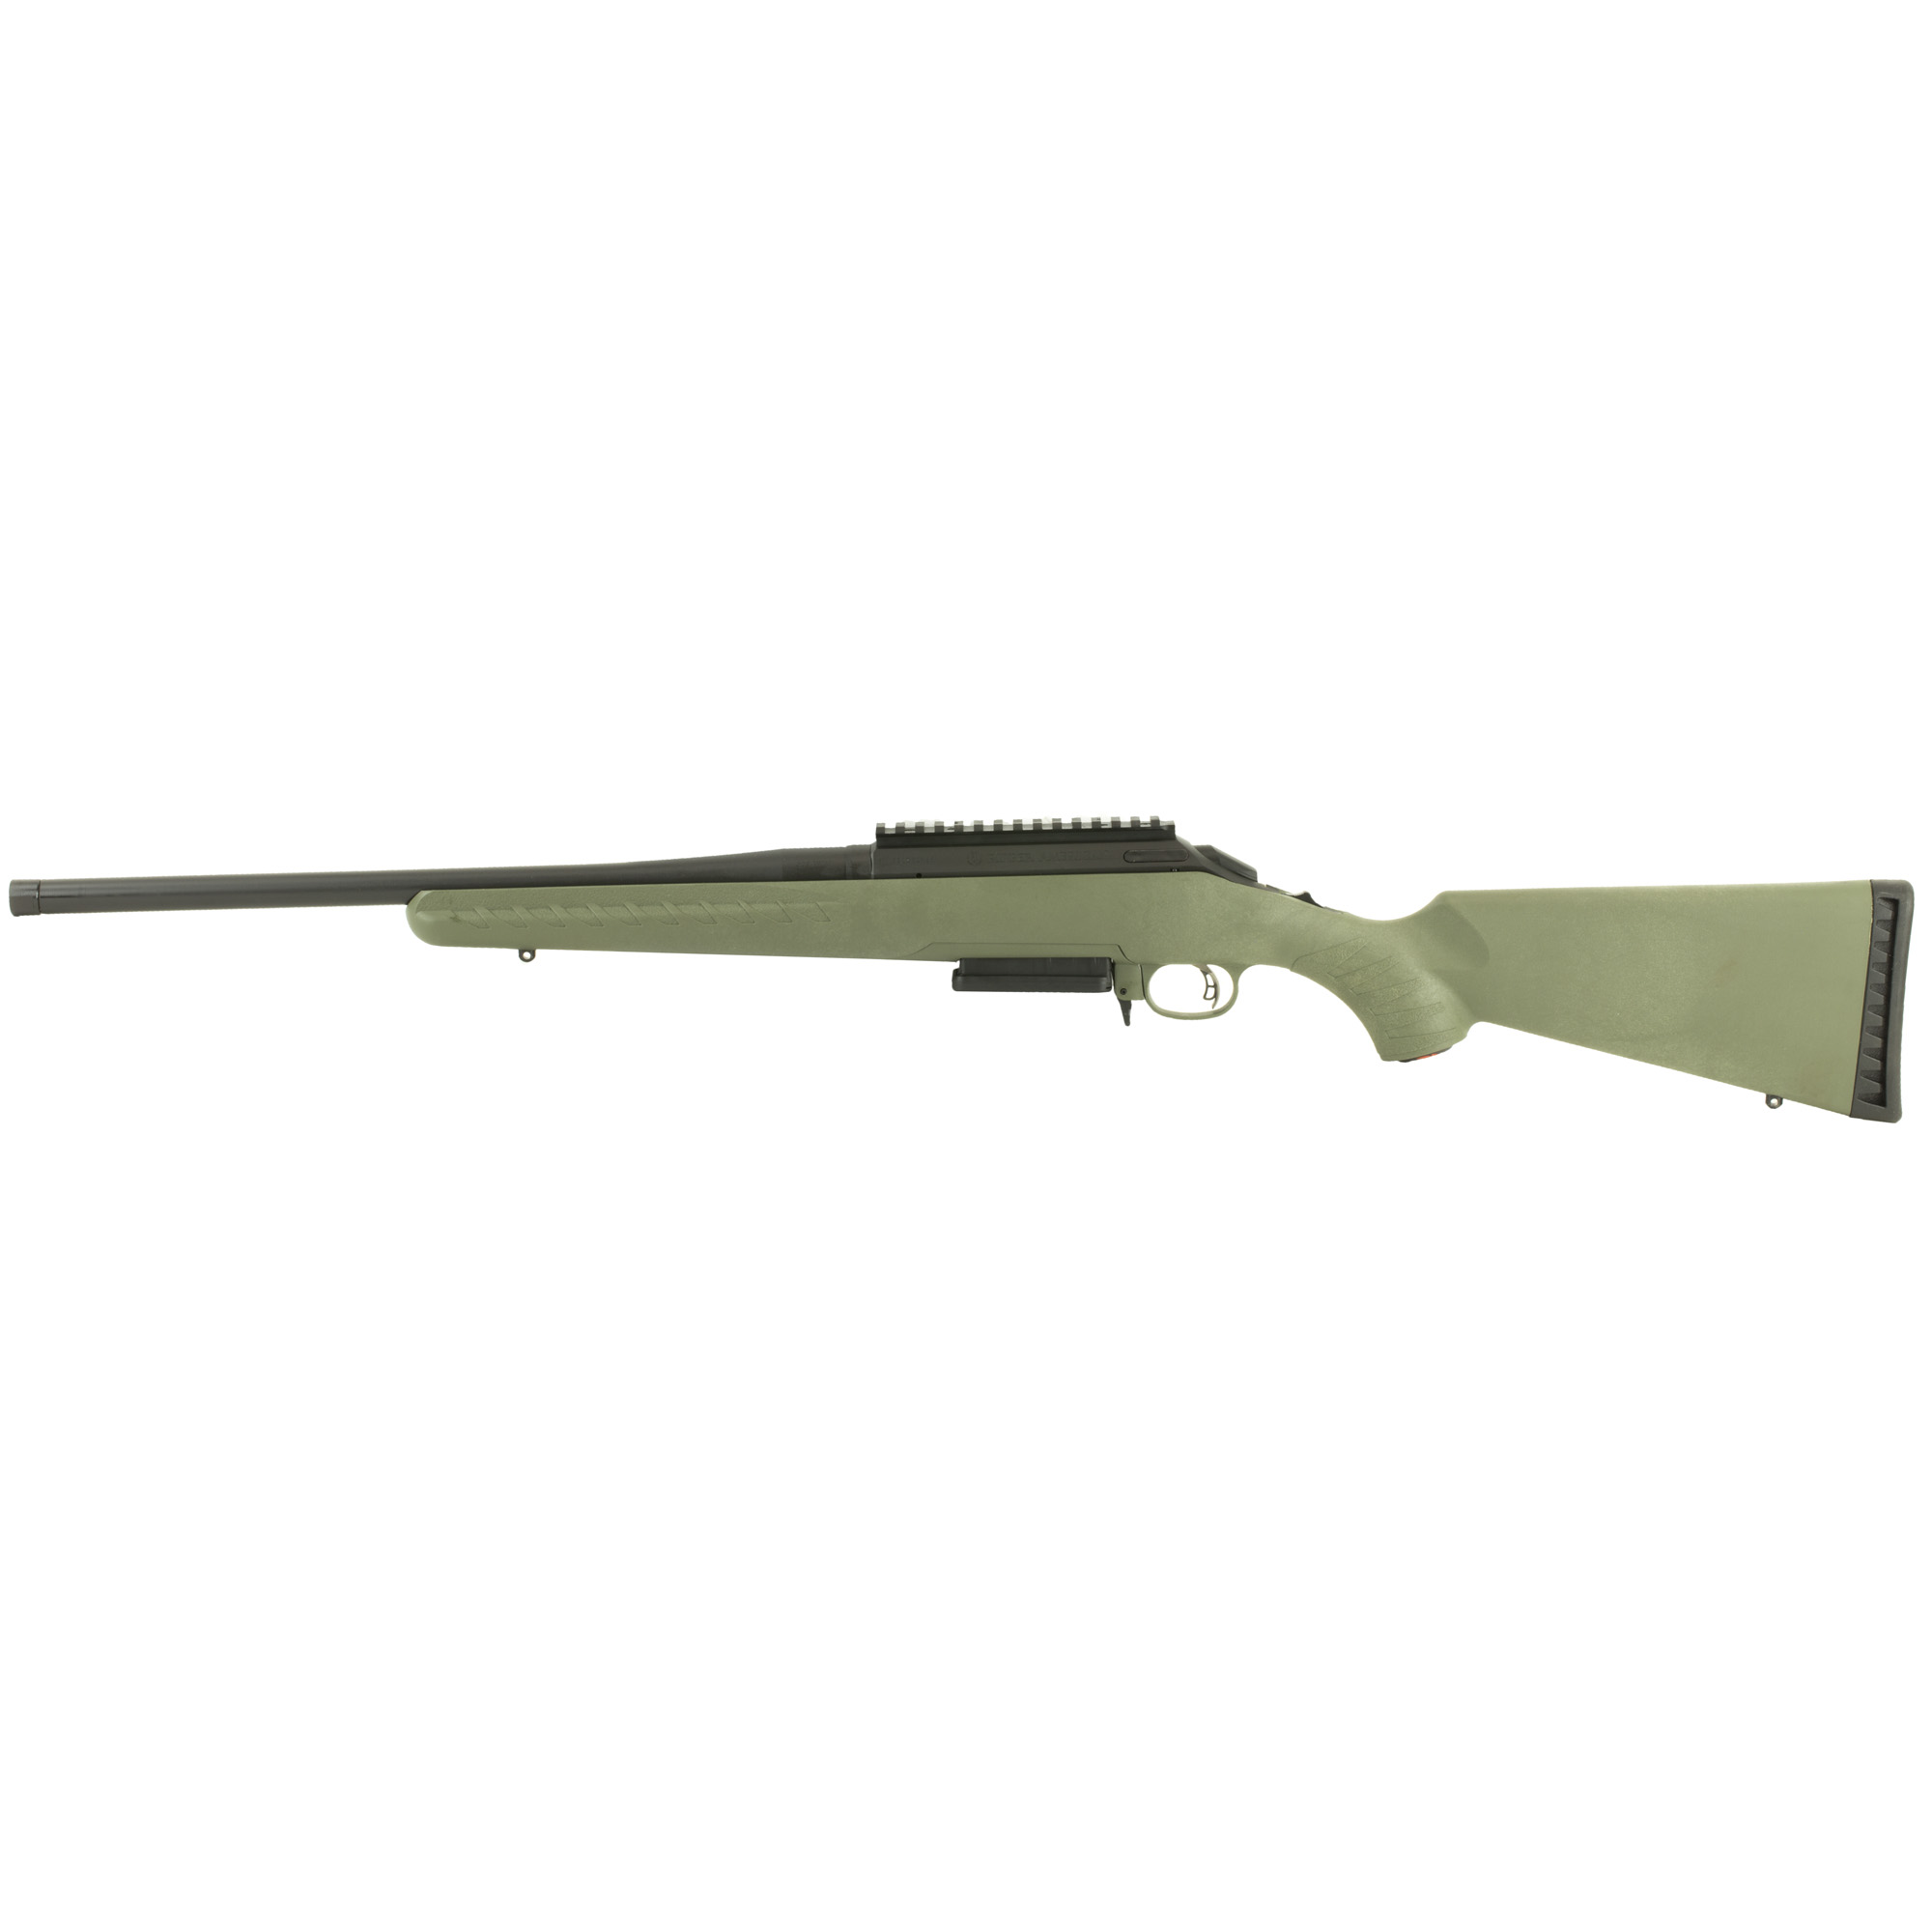 """Ergonomic"""" lightweight synthetic stock designed for quick"""" easy handling blends a classic look with modern forend contouring and grip serrations. Ruger Marksman Adjustable(TM) trigger offers a crisp release with a pull weight that is user adjustable between 3 and 5 pounds"""" allowing shooters to make that perfect shot. The one-piece"""" three-lug bolt with 70 degree throw provides ample scope clearance and utilizes a full diameter bolt body and dual cocking cams for smooth"""" easy cycling from the shoulder. Patent-pending Power Bedding(R)"""" integral bedding block system positively locates the receiver and free-floats the barrel for outstanding accuracy. Offers minute-of-angle accuracy that can make every hunt a success. Cold hammer-forged barrel results in ultra- precise rifling that provides exceptional accuracy"""" longevity and easy cleaning. Features a visible"""" accessible and easy-to-actuate tang safety that provides instant security. Soft rubber buttpad is crafted for maximum recoil reduction."""